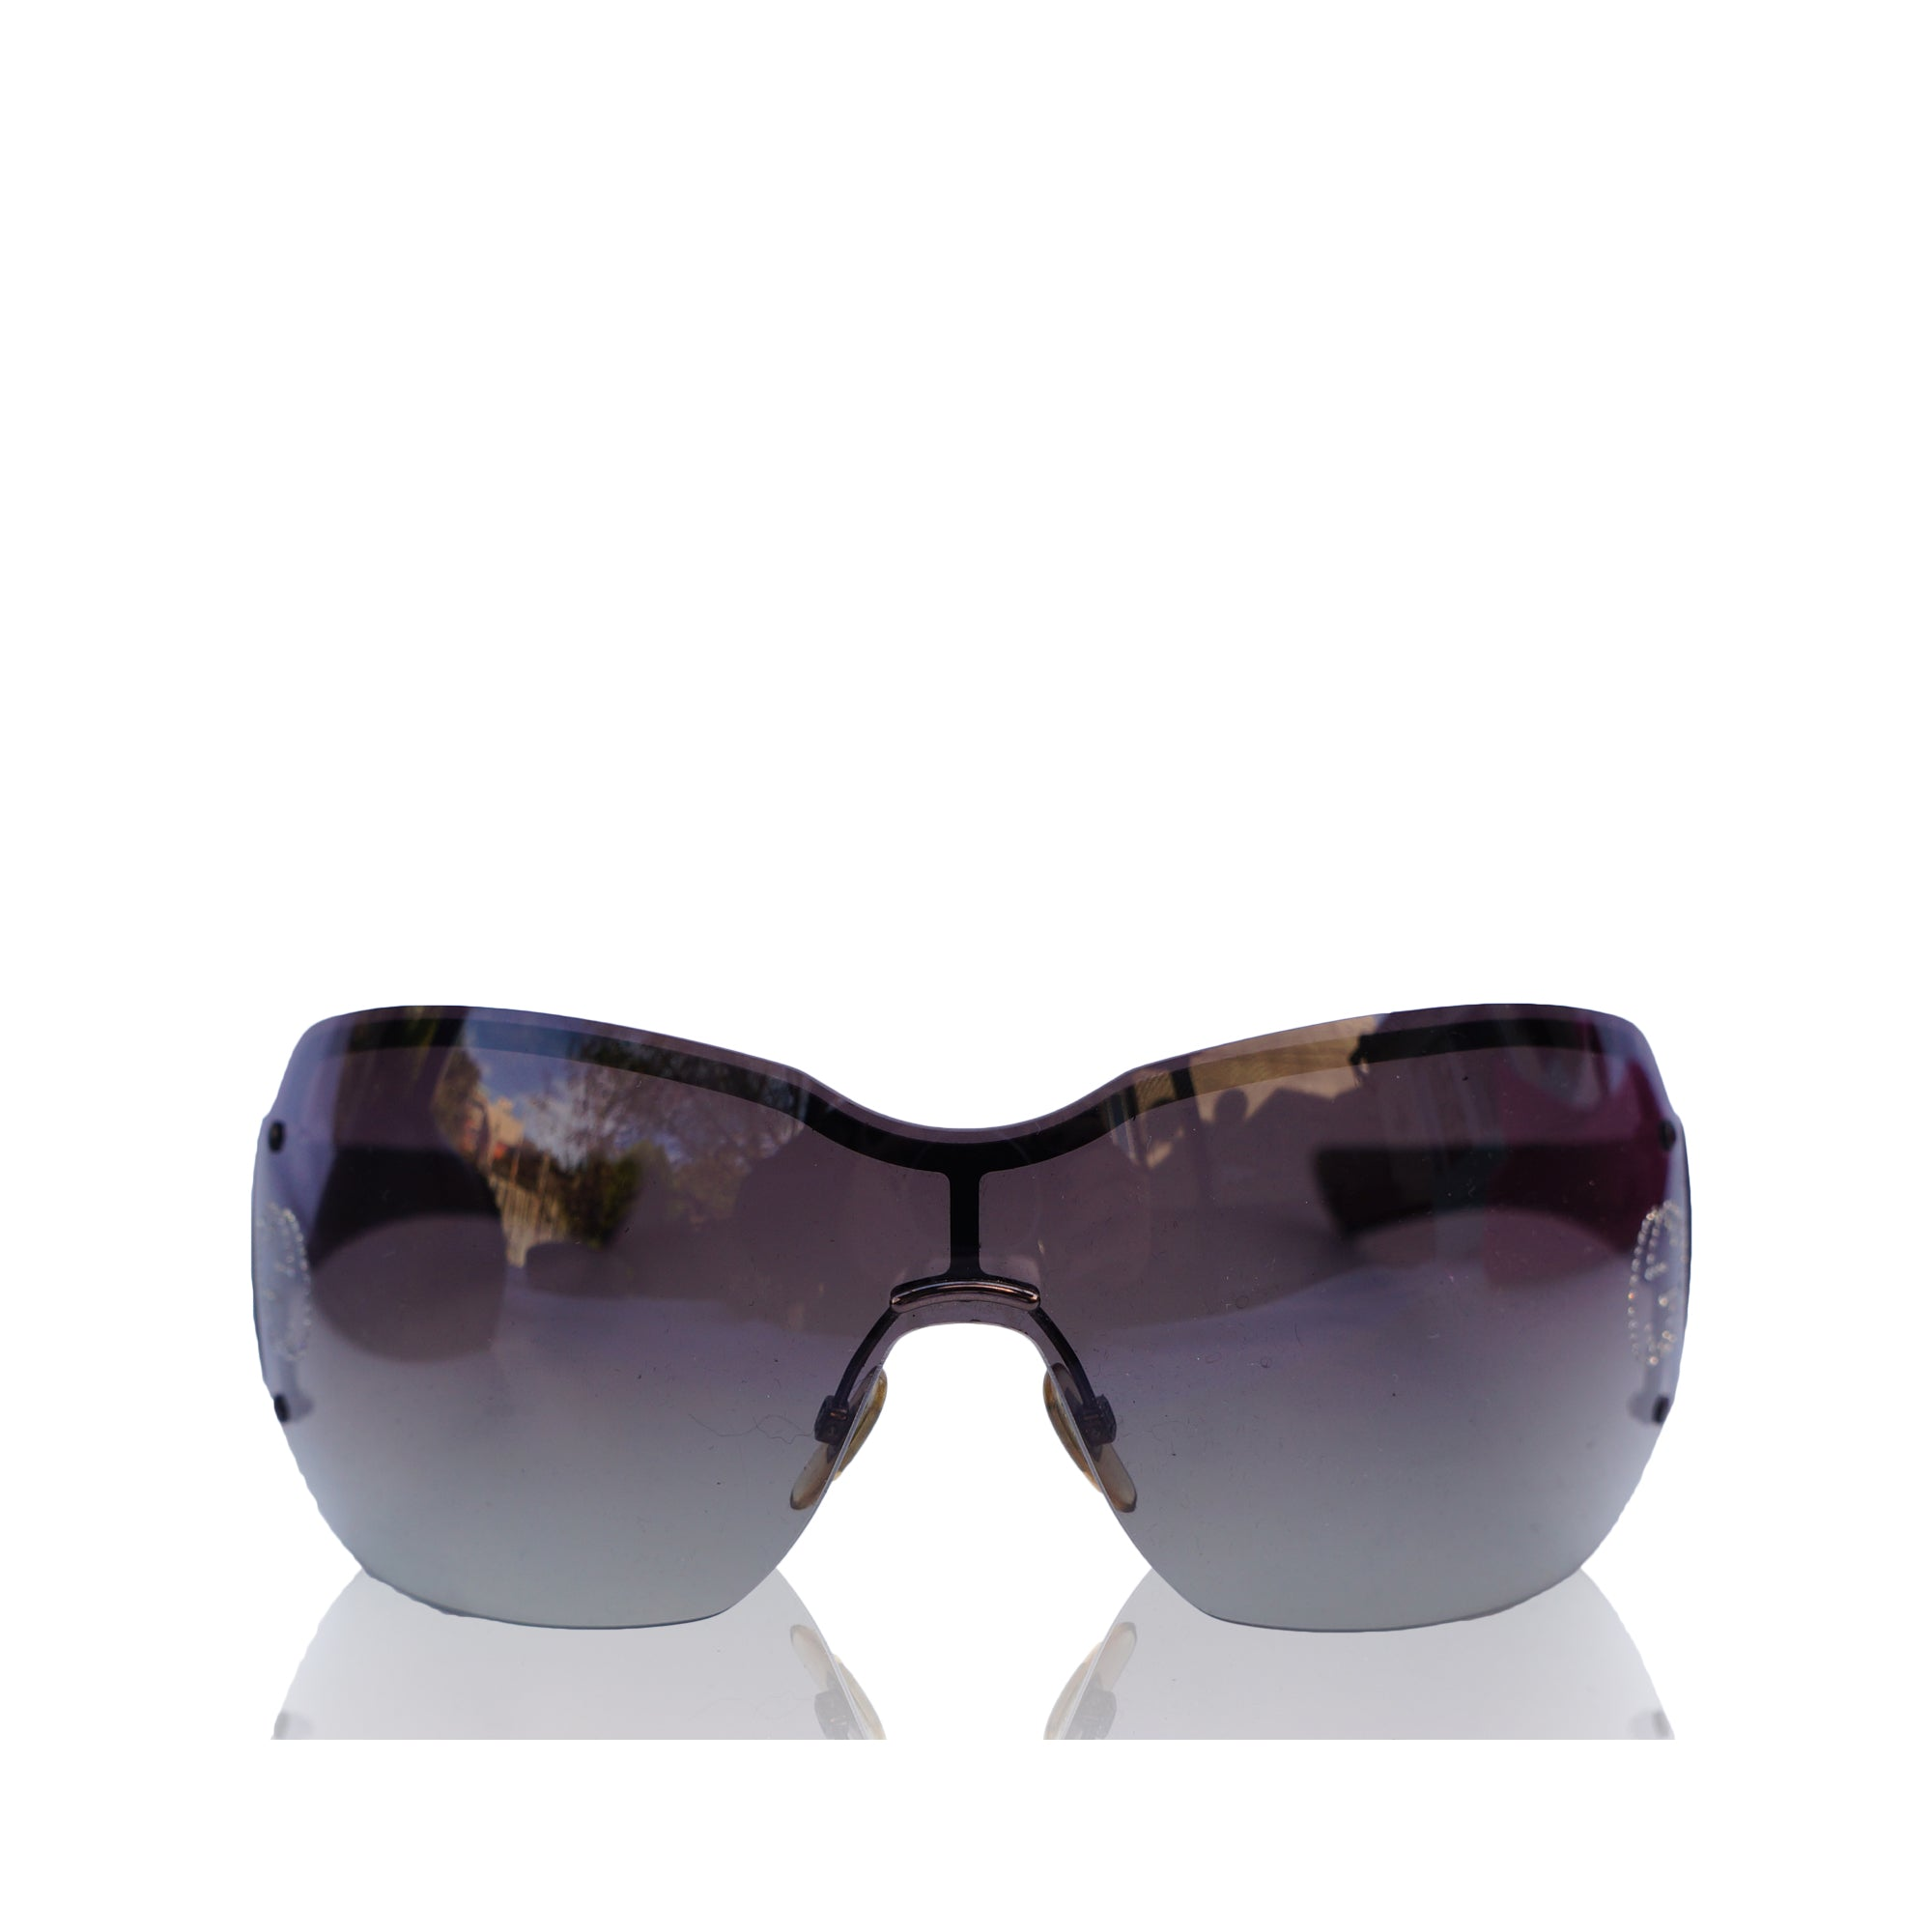 75f6e4884f218 GUCCI CRYSTAL GG SHIELD SUNGLASSES Shop online the best value on authentic  designer used preowned consignment ...